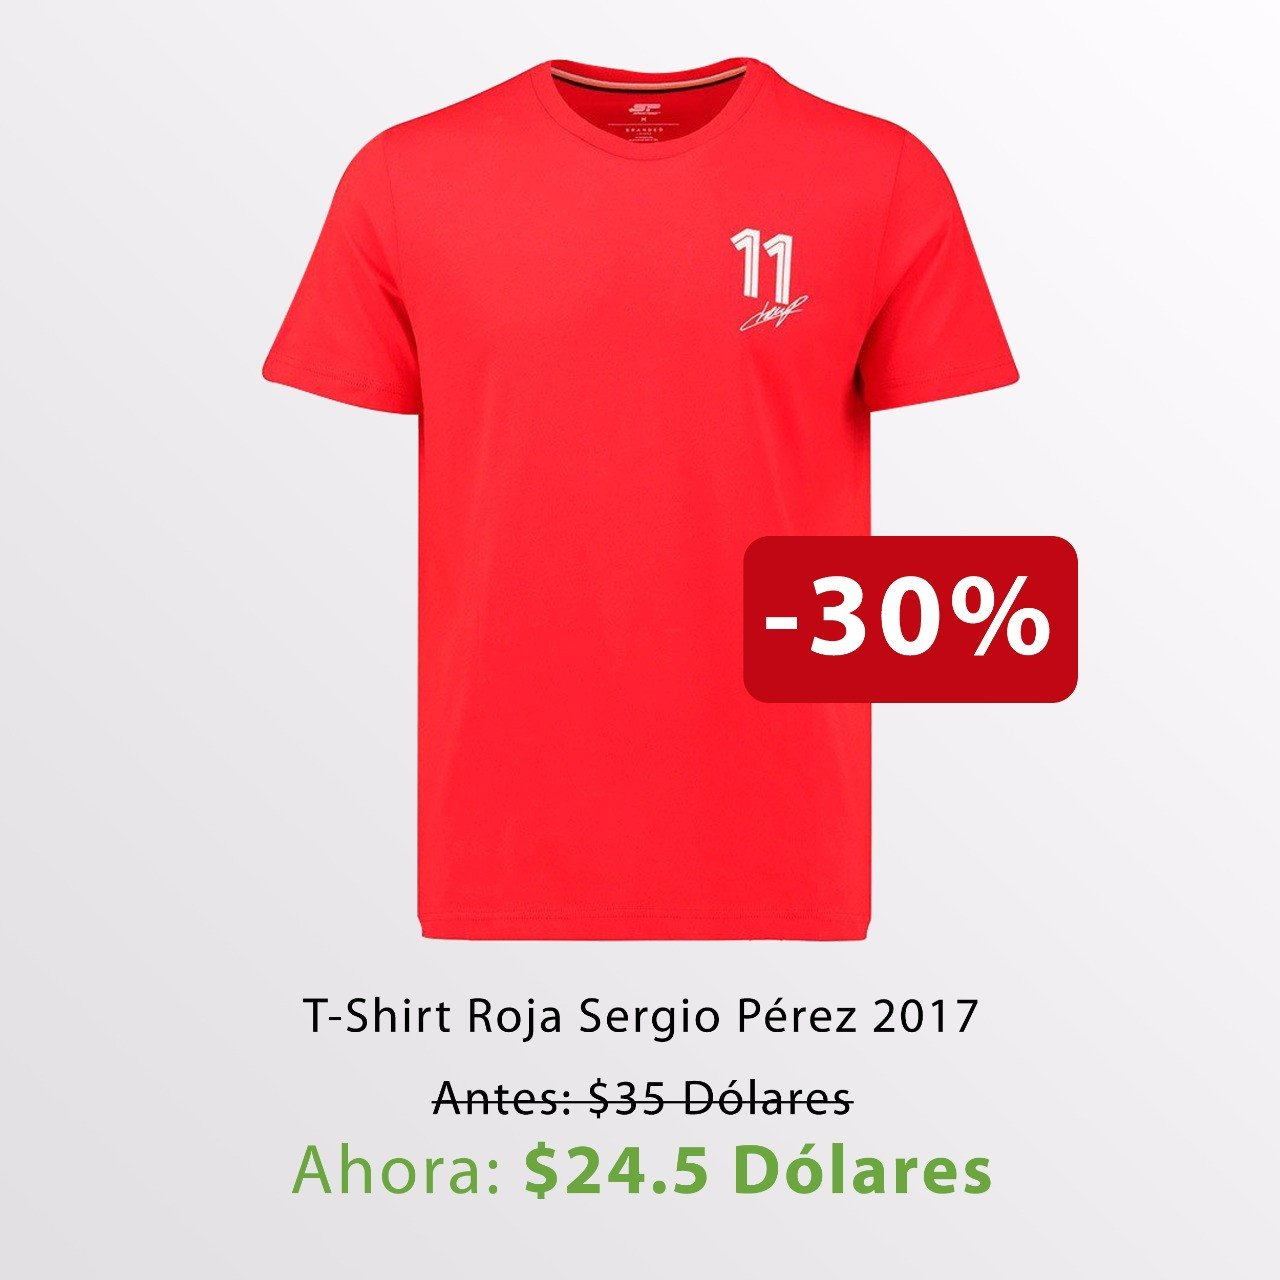 Camiseta Checo Pérez 11 / Checo Perez 11 T-Shirt